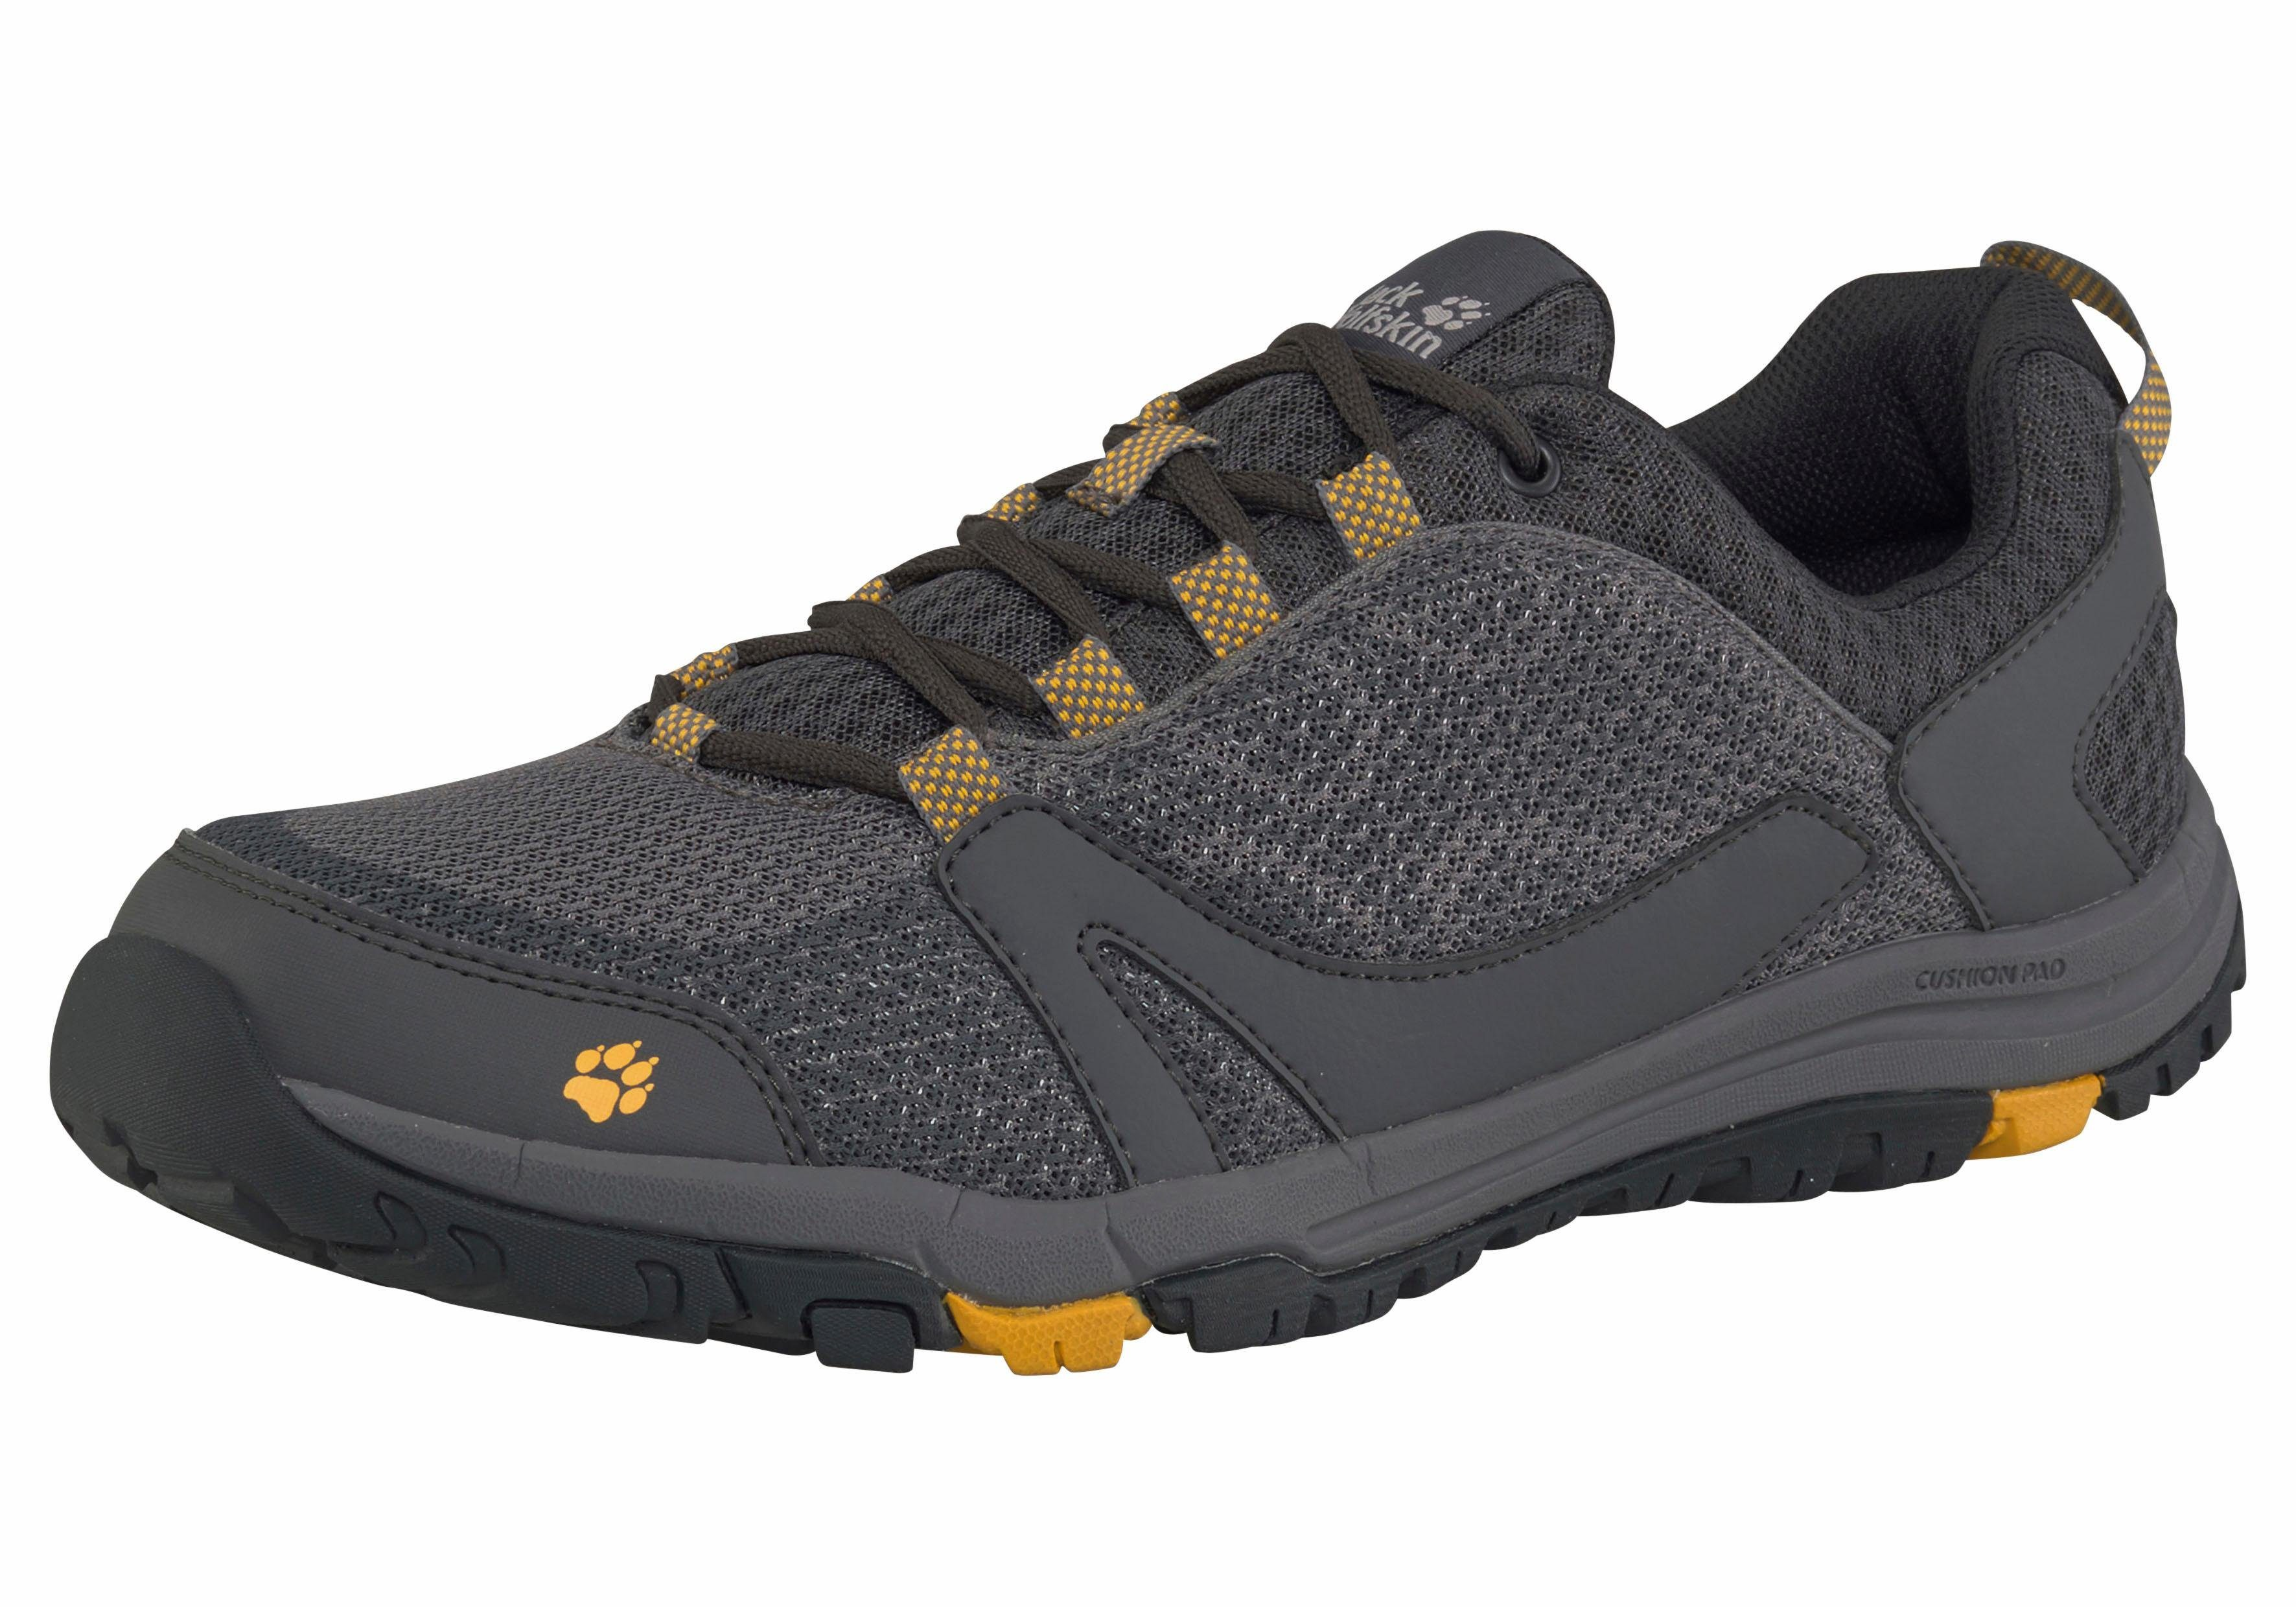 Jack Wolfskin Activate Low M Outdoorschuh kaufen  anthrazit-gelb